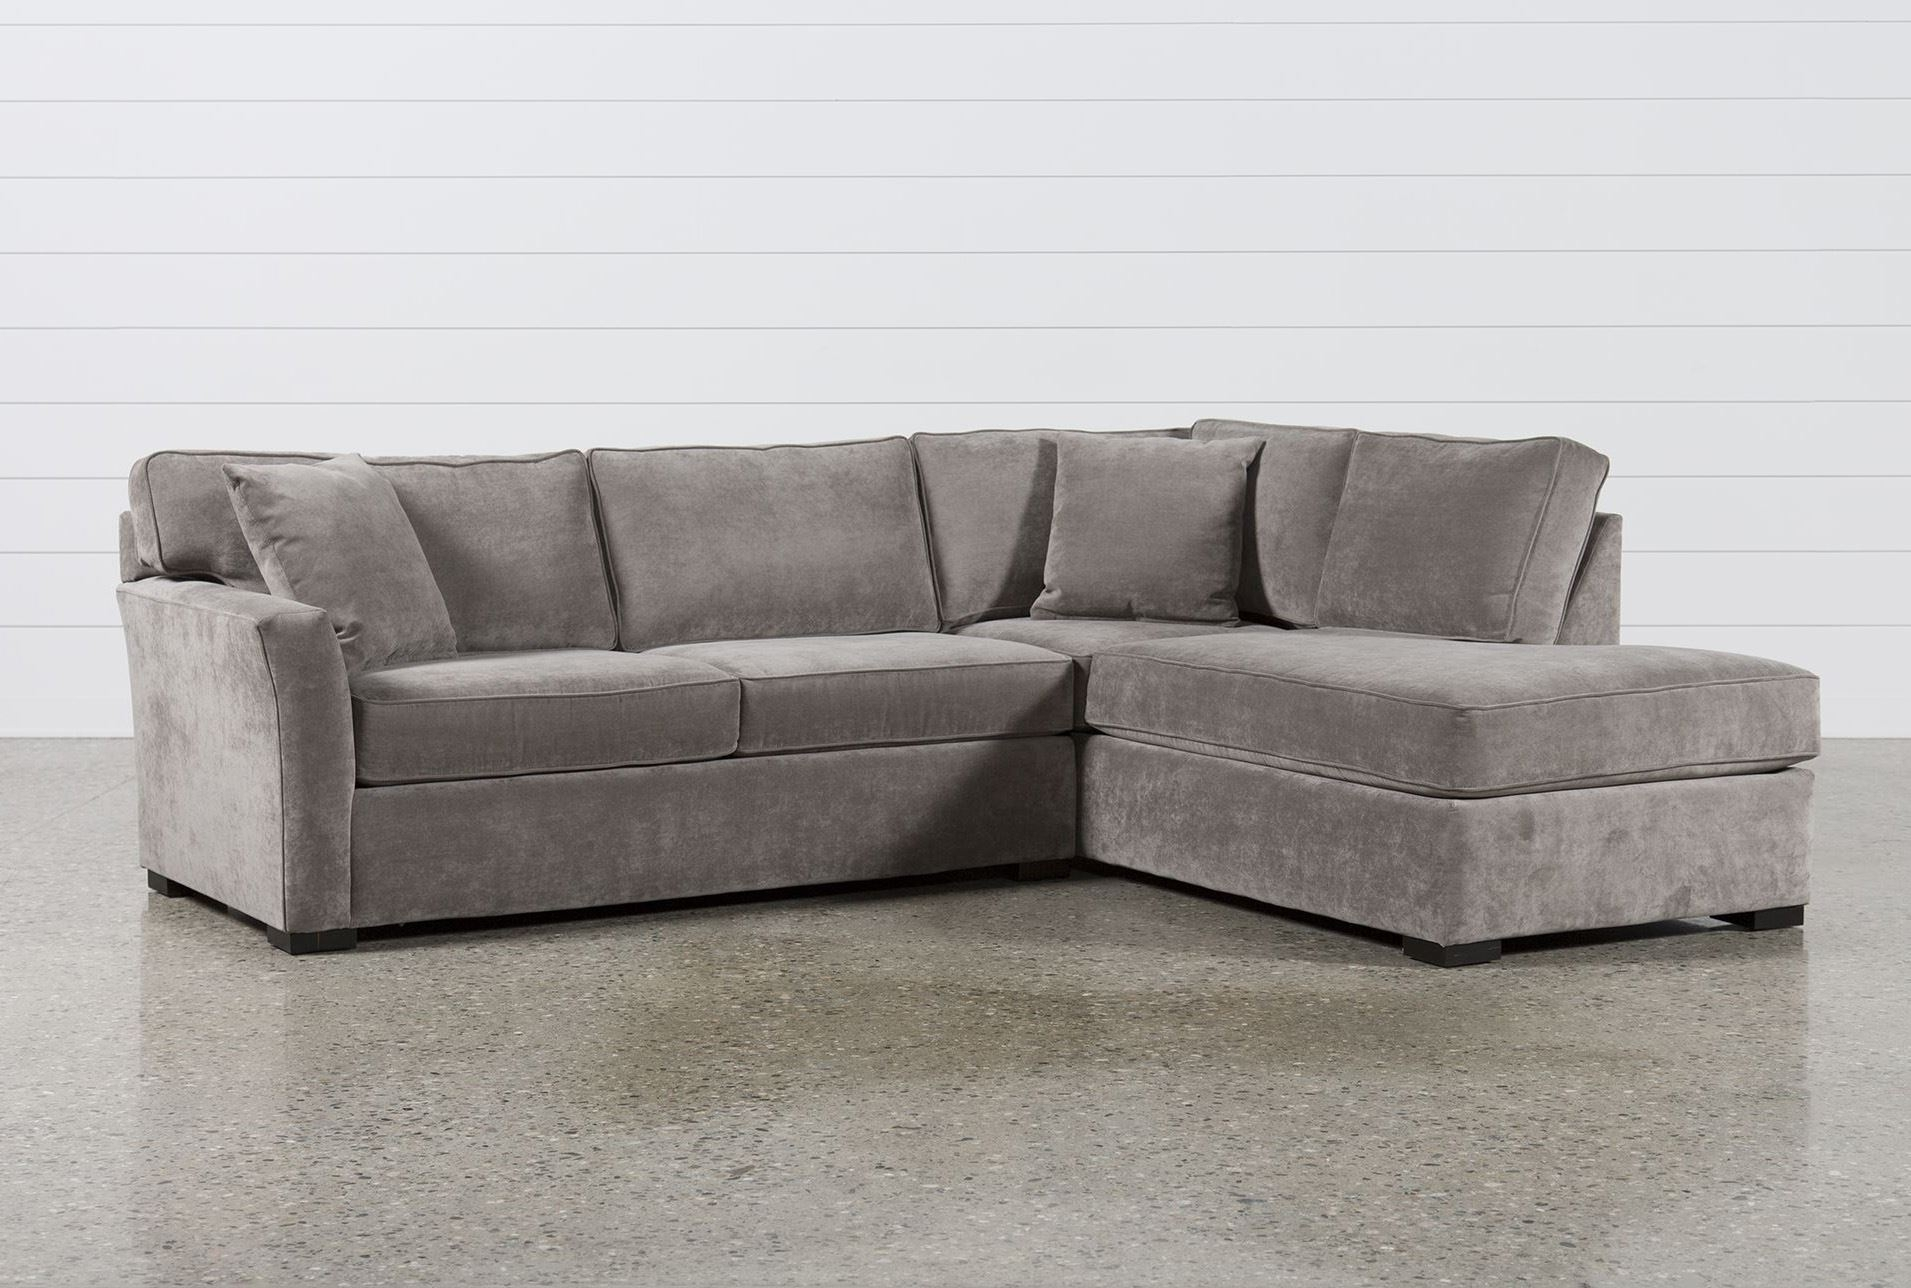 Collection Of Solutions Sectional Sofa With 2 Chaises On Aspen 2 Intended For Kerri 2 Piece Sectionals With Raf Chaise (Image 7 of 25)